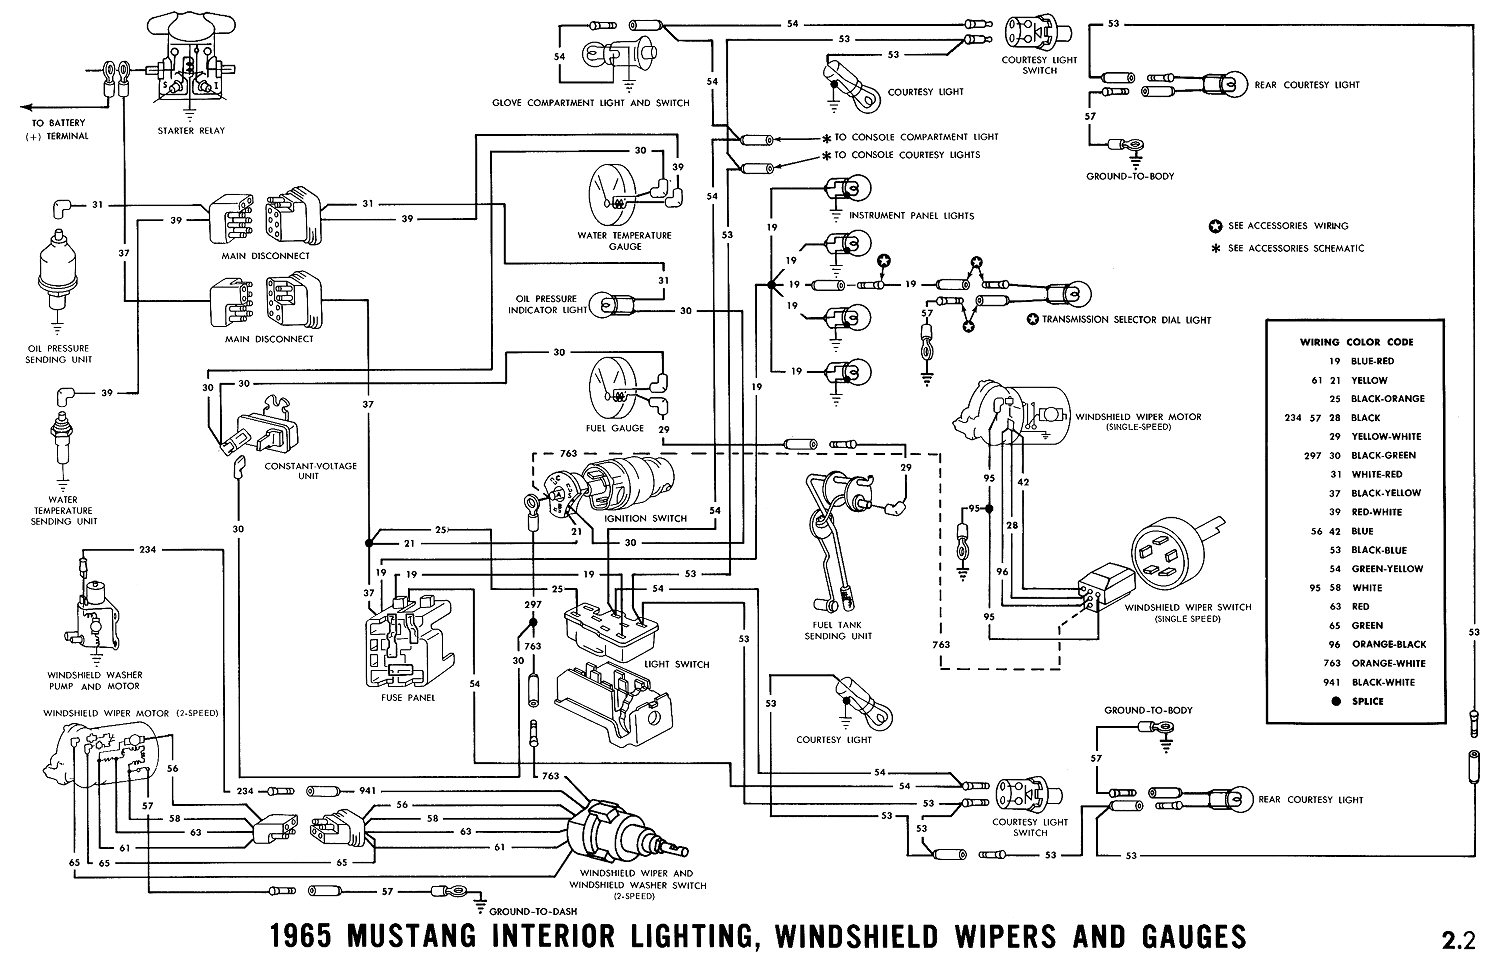 1965 ford mustang wiring diagram Collection-1965g With 1966 Mustang Wiring Diagram 20-m